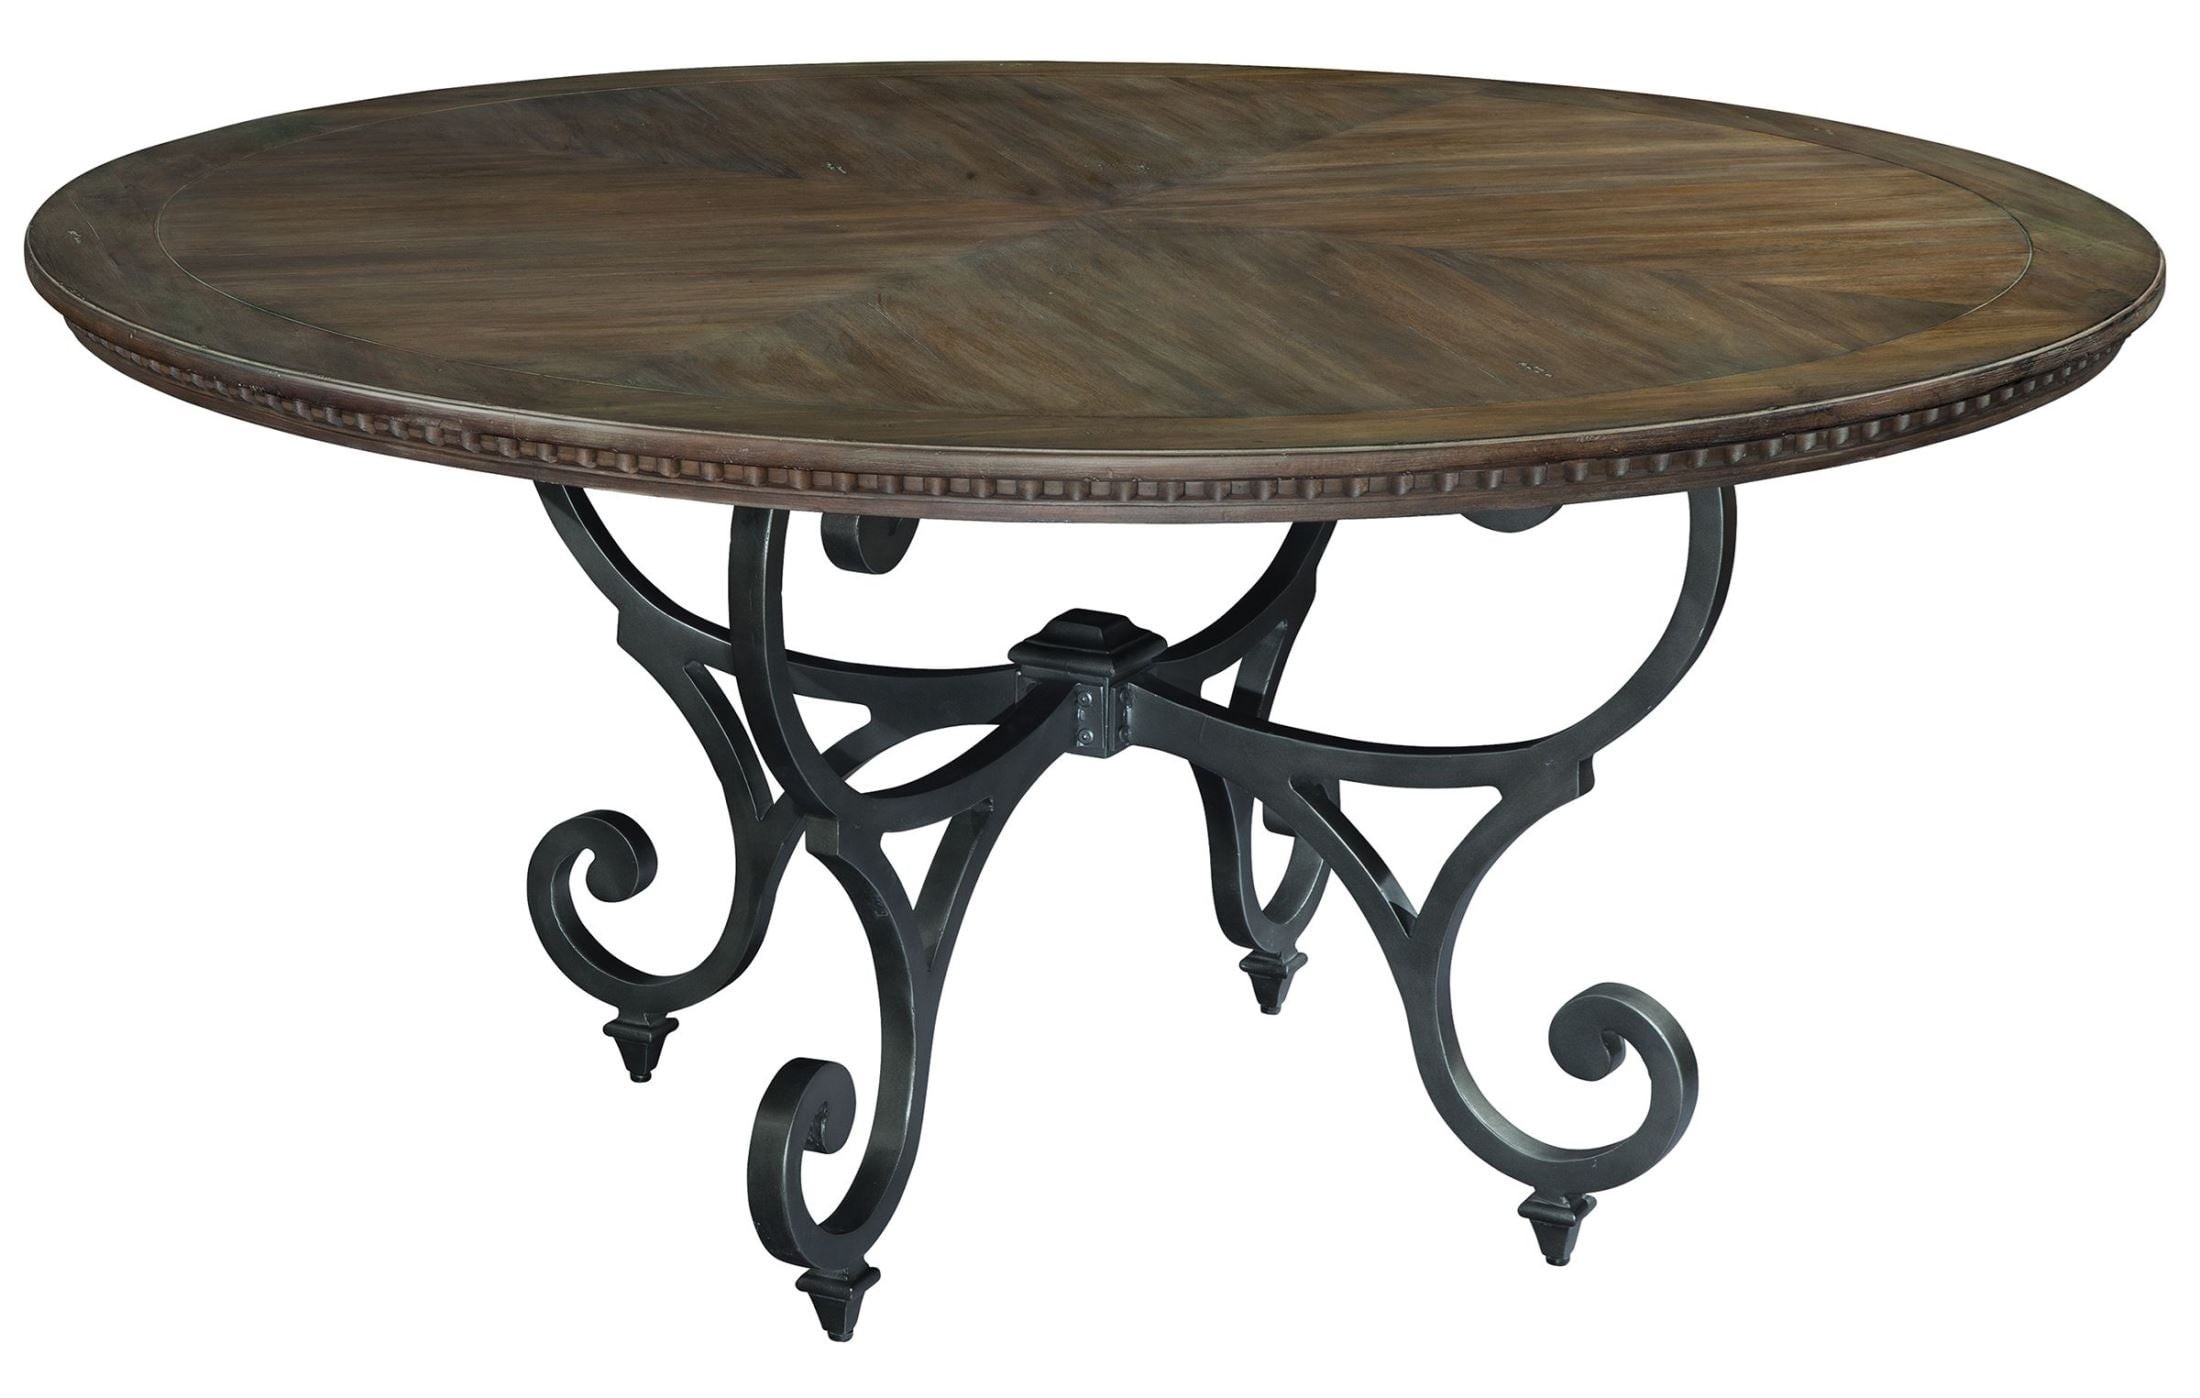 Turtle Creek Round Antique Brass Dining Table